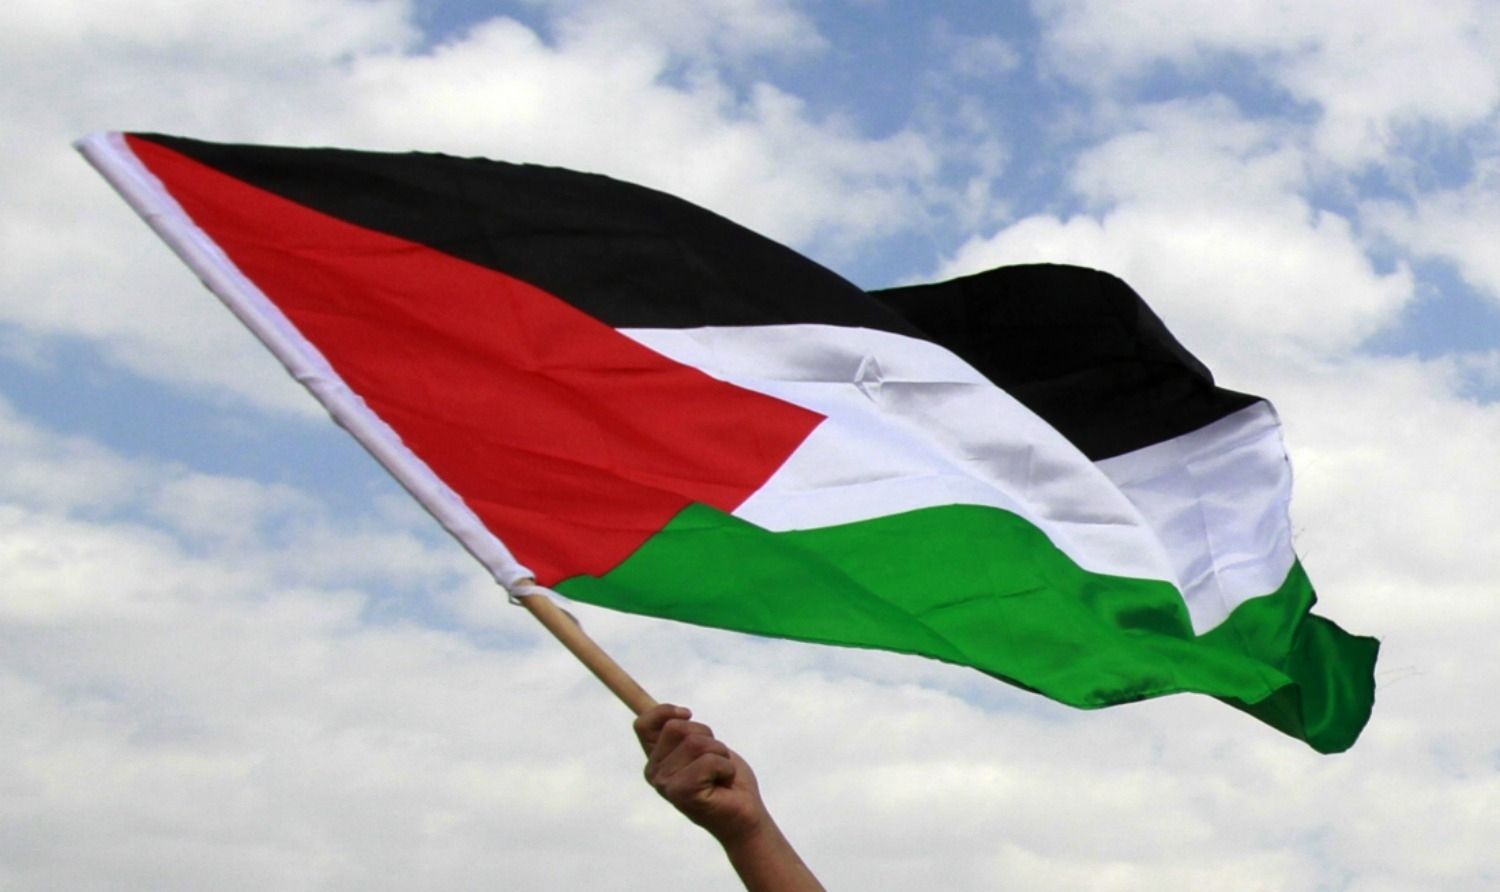 Palestinian flag to fly over Council buildings in Tallaght and Clondalkin